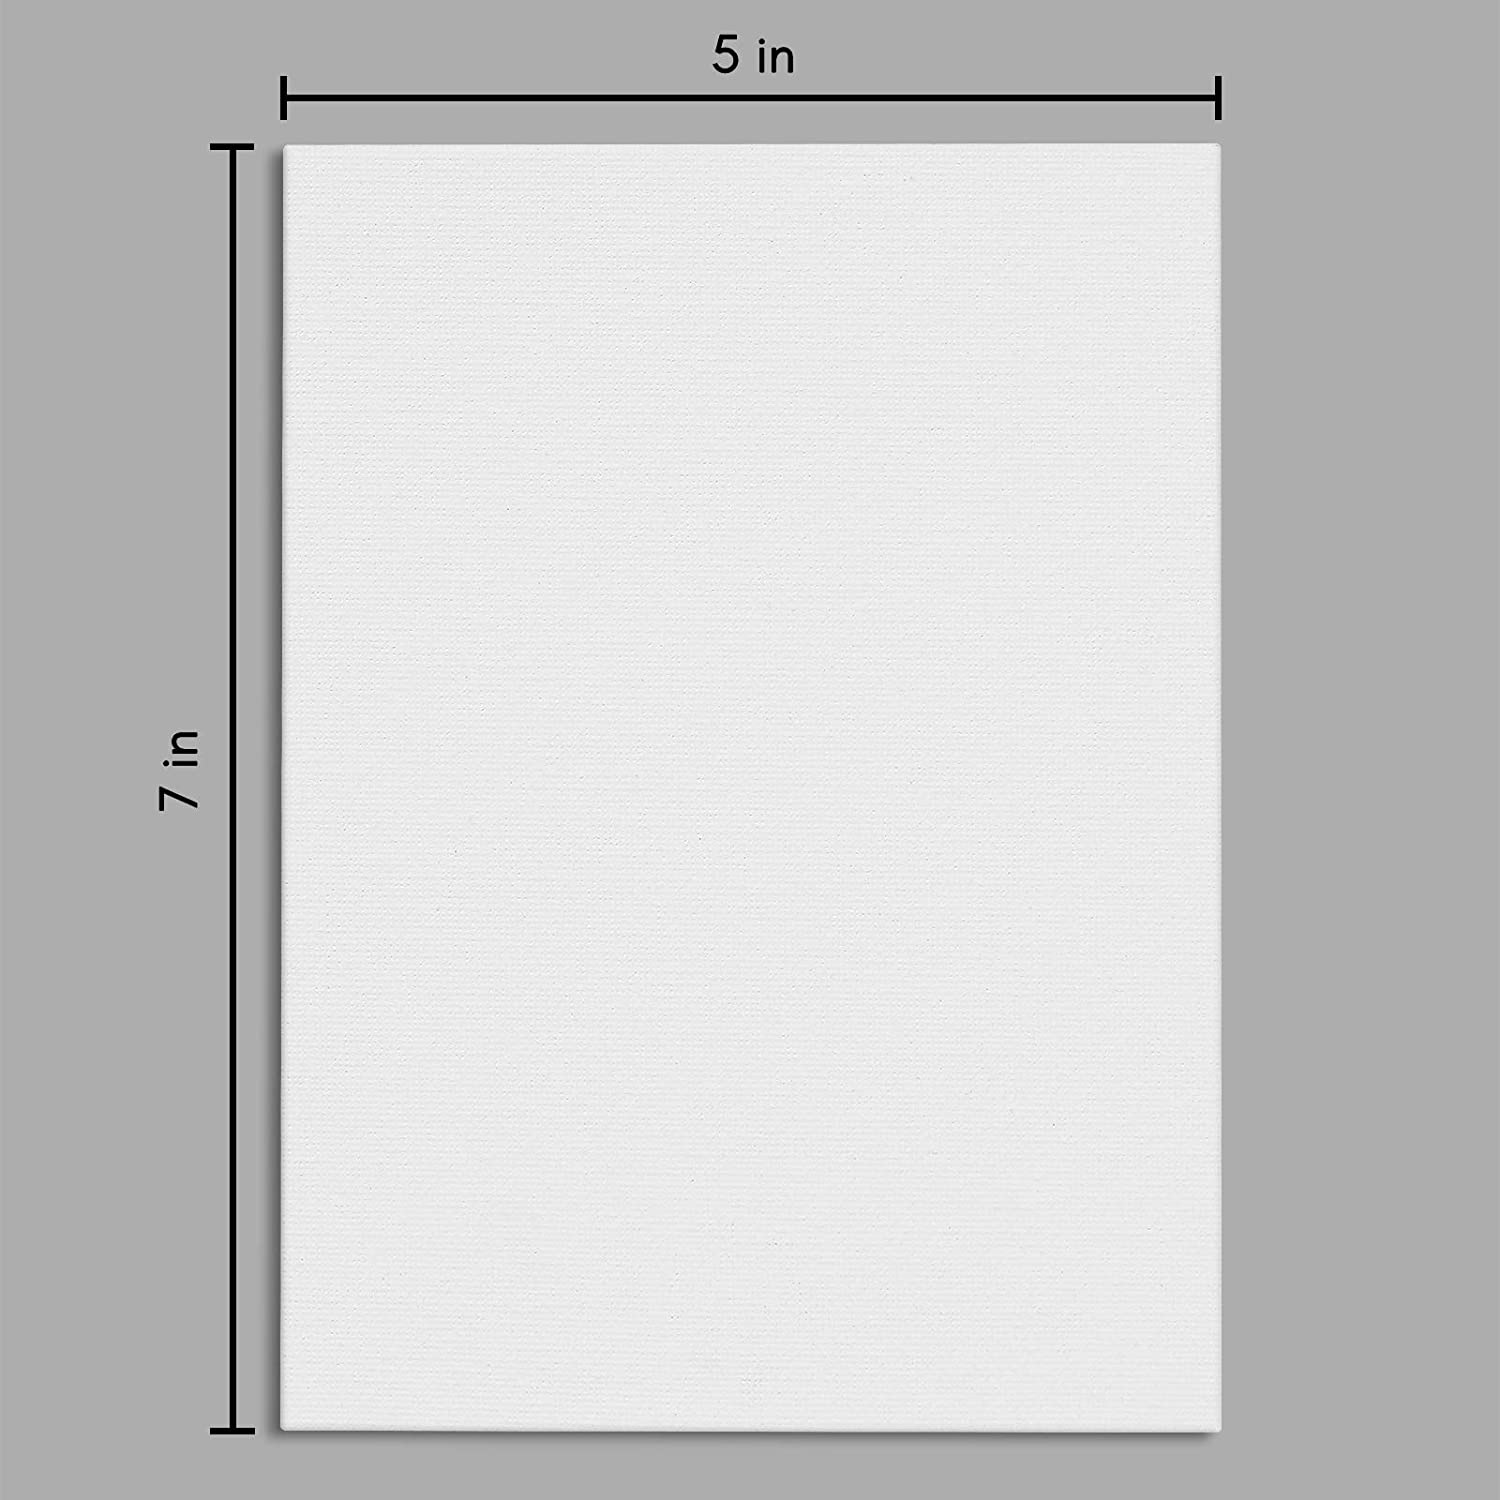 miniature 3 - Americanflat Stretched Canvas in White 100% Cotton Wooden Frames & Acid Free